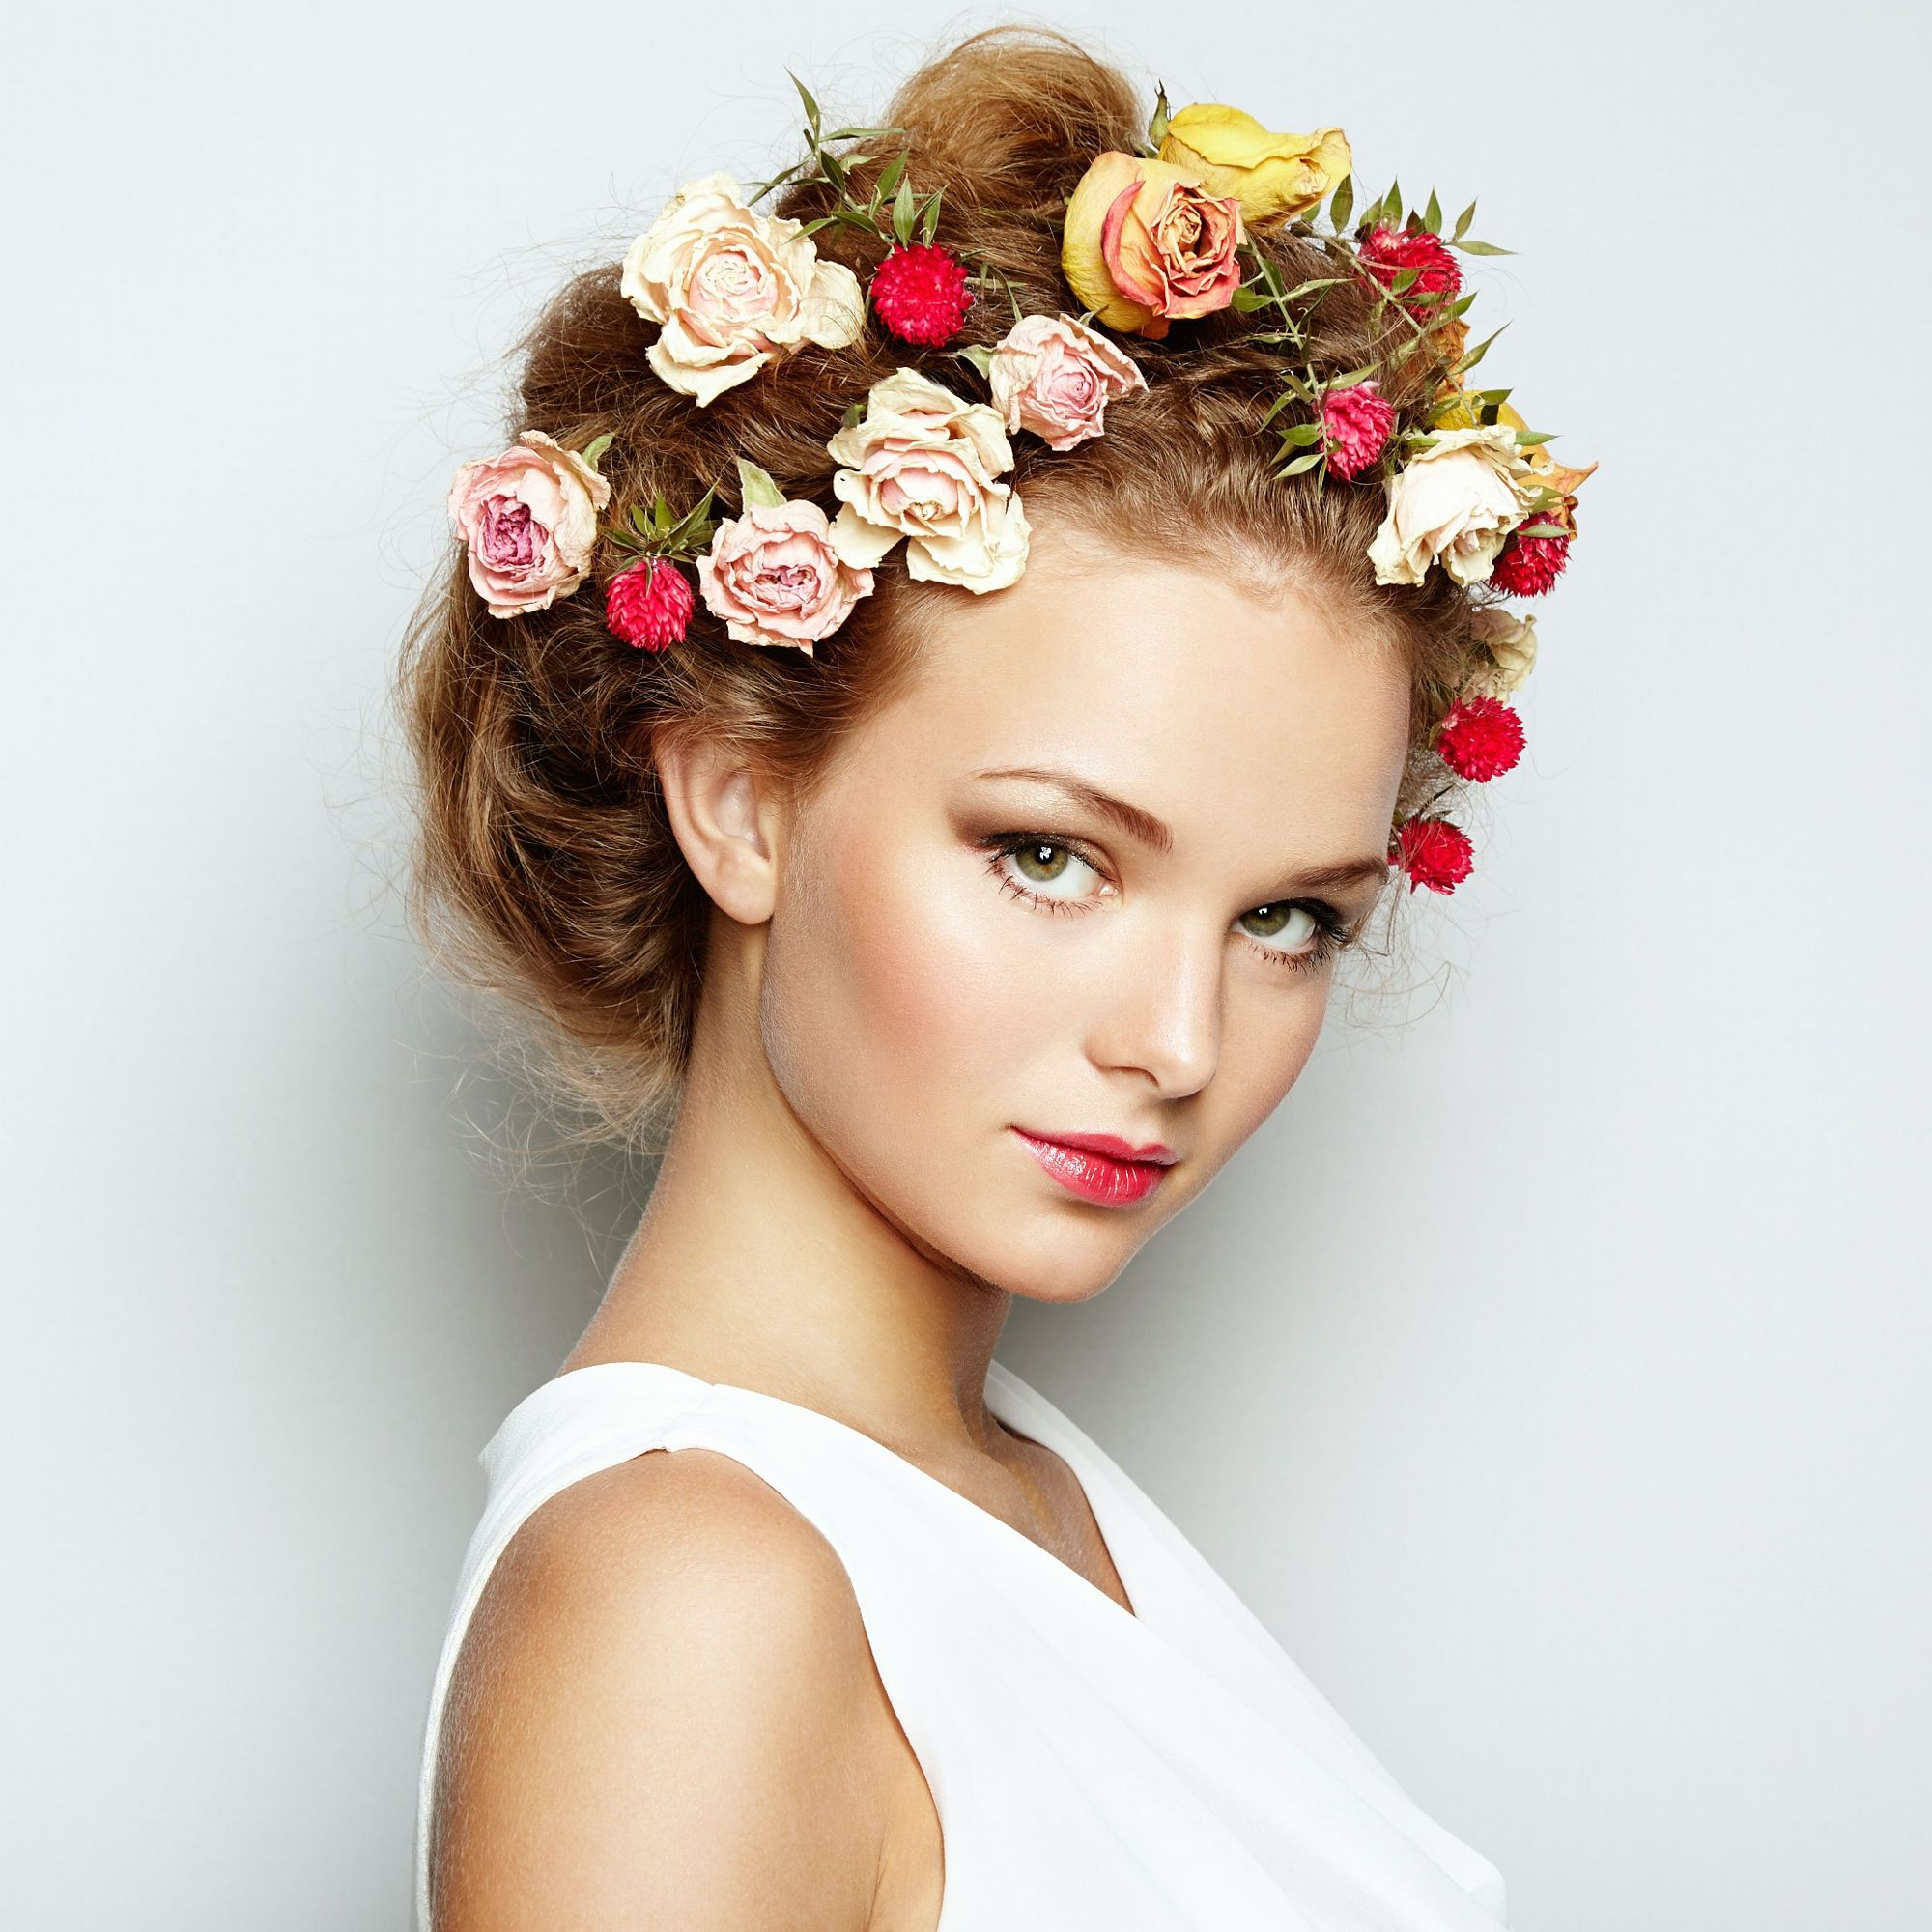 Beautiful woman with flowers perfect face skin beauty portrait beautiful woman with flowers perfect face skin beauty portrait fashion photo izmirmasajfo